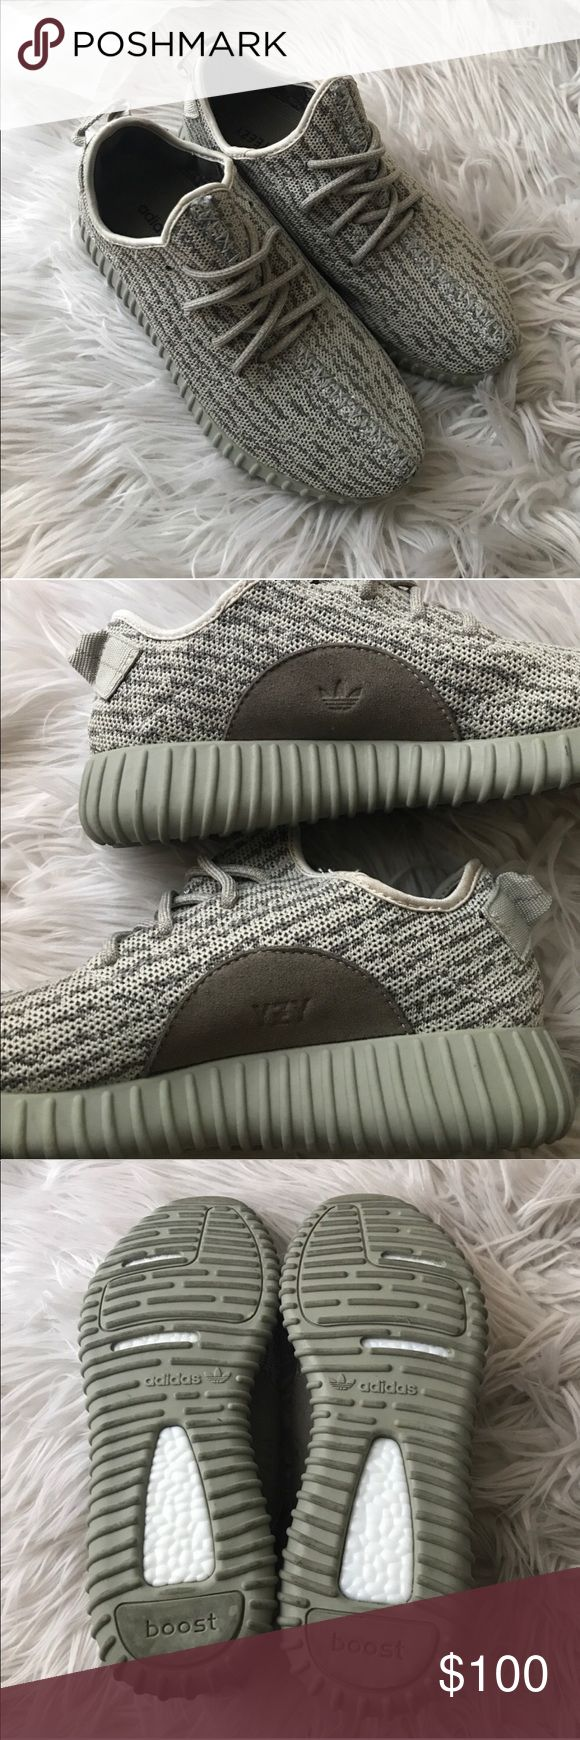 Adidas Yeezy Boost Price reflects authenticity. Very clean & comfy. adidas Shoes Athletic Shoes